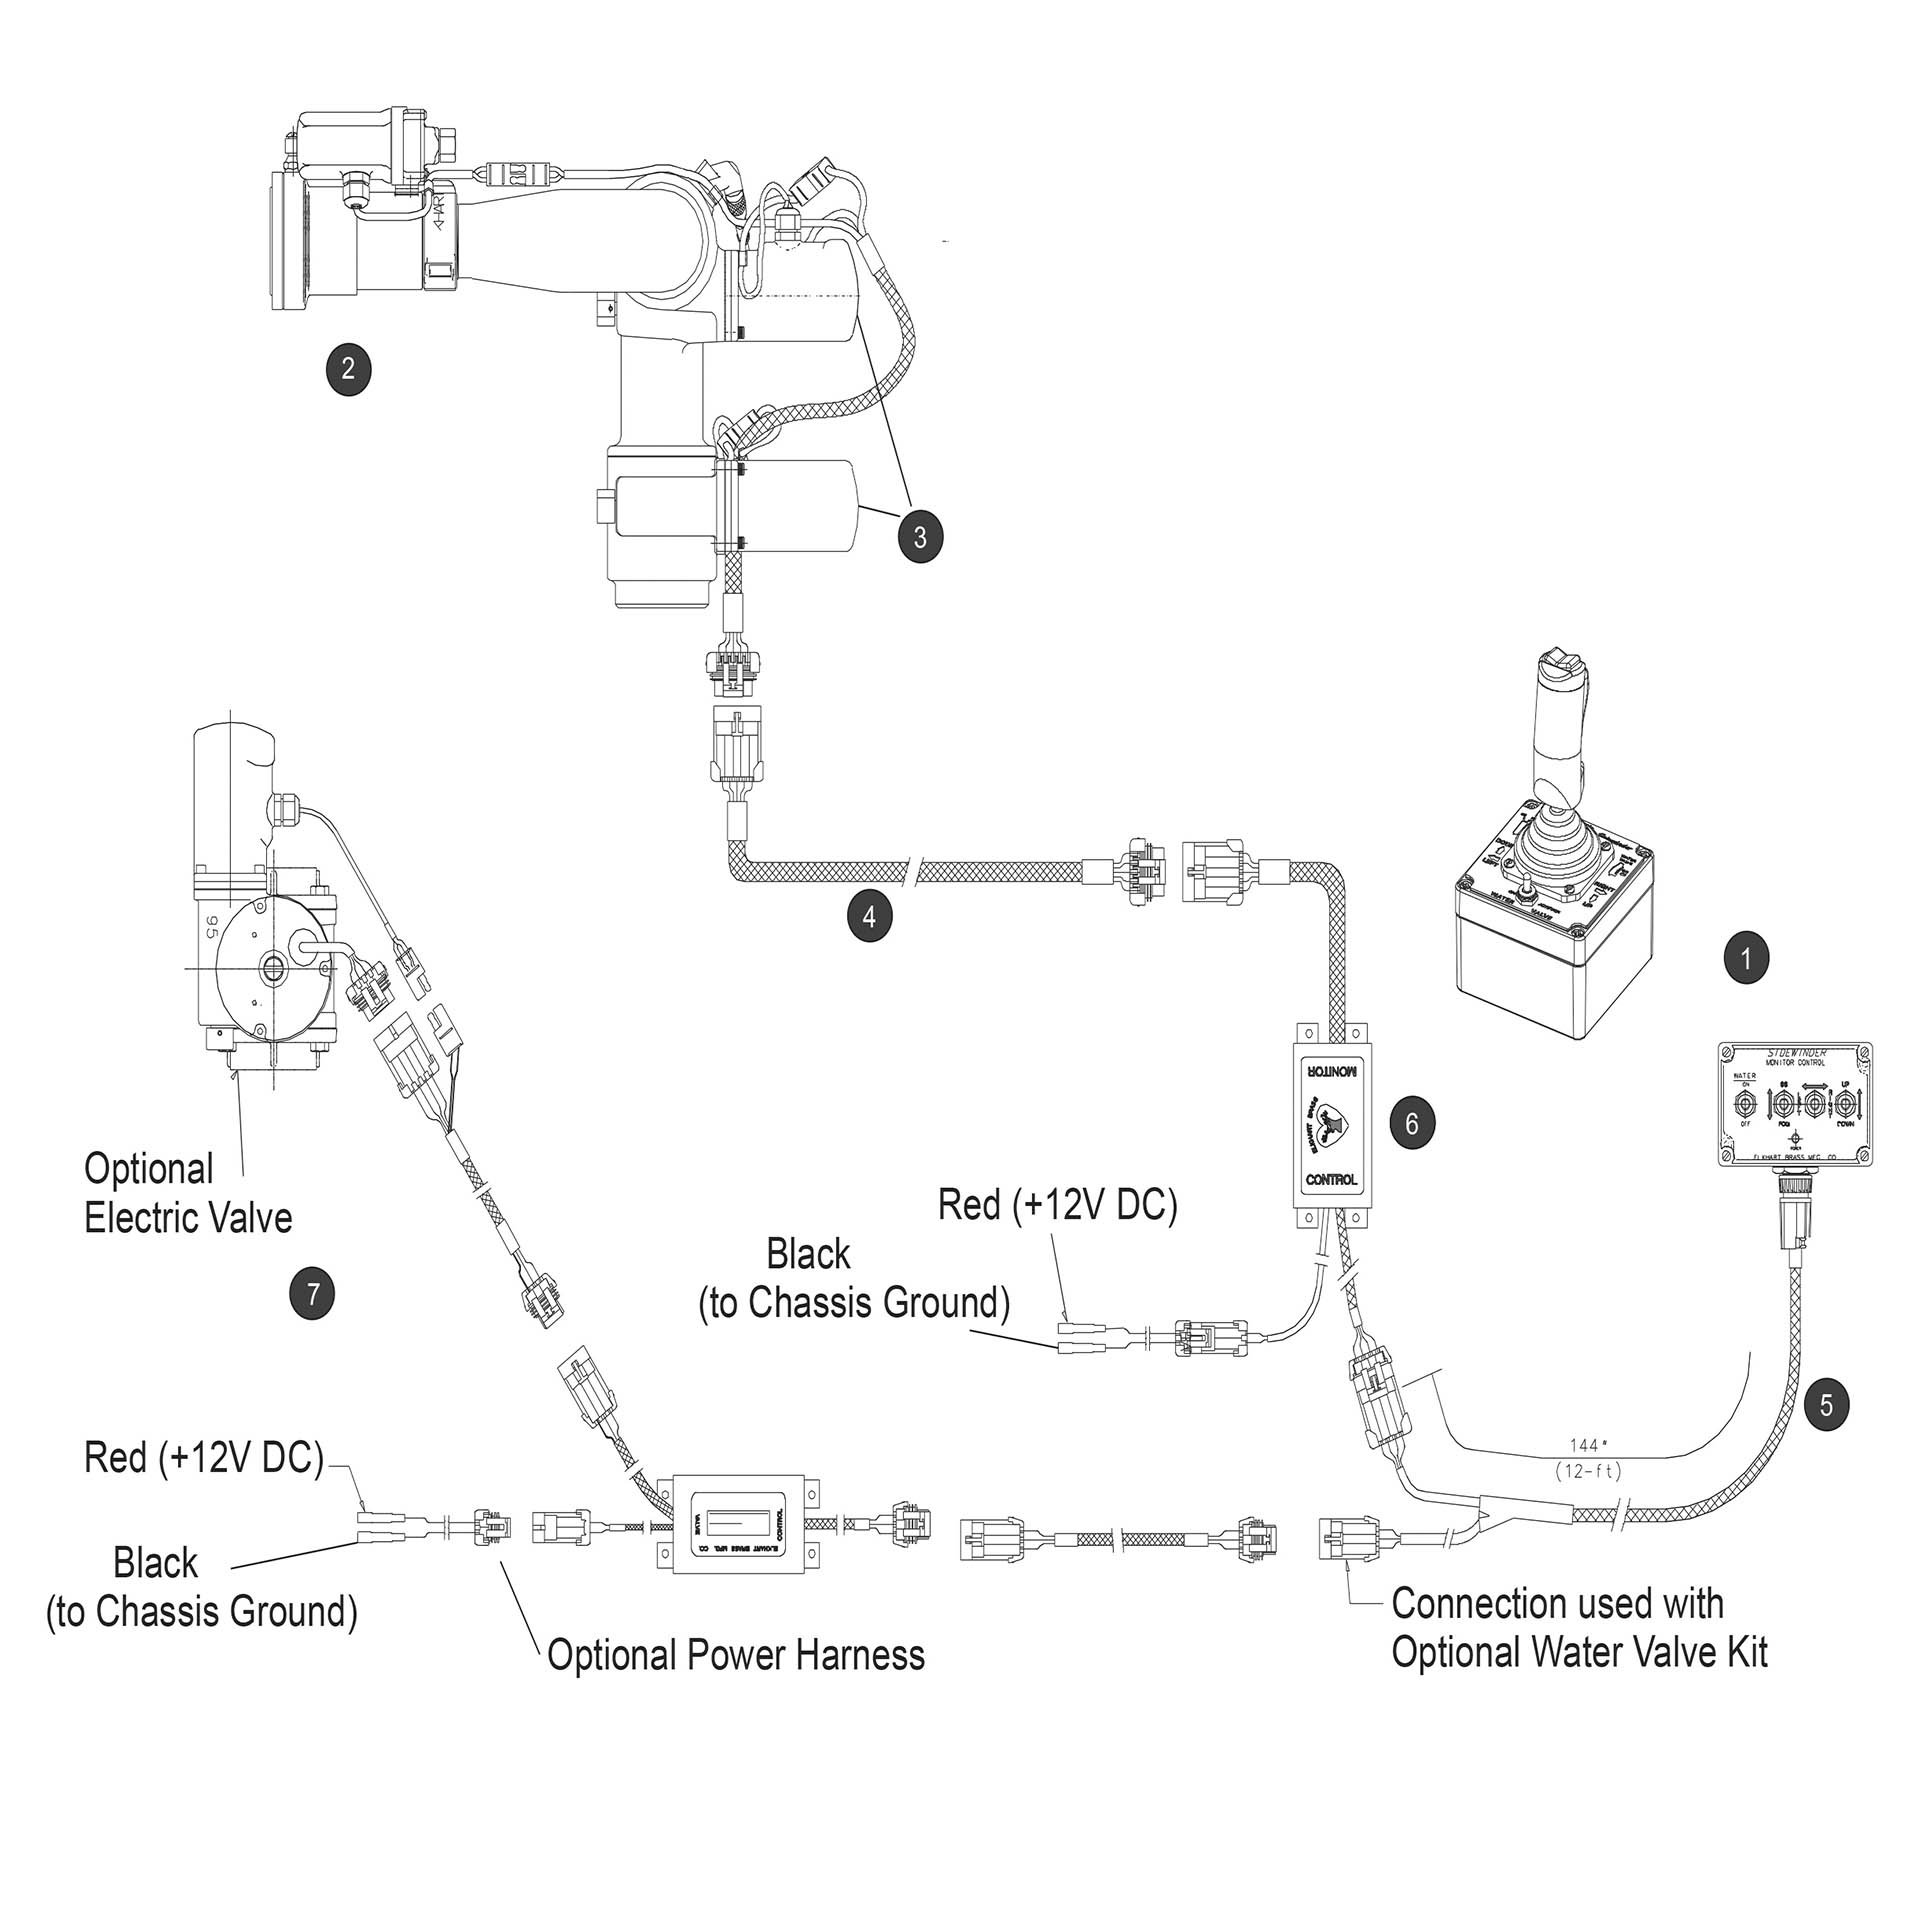 buy elkhart electric operated water cannon online at access truck parts rh accesstruckparts com Chevy Truck Wiring Diagram Western Cable Plow Wiring Diagram